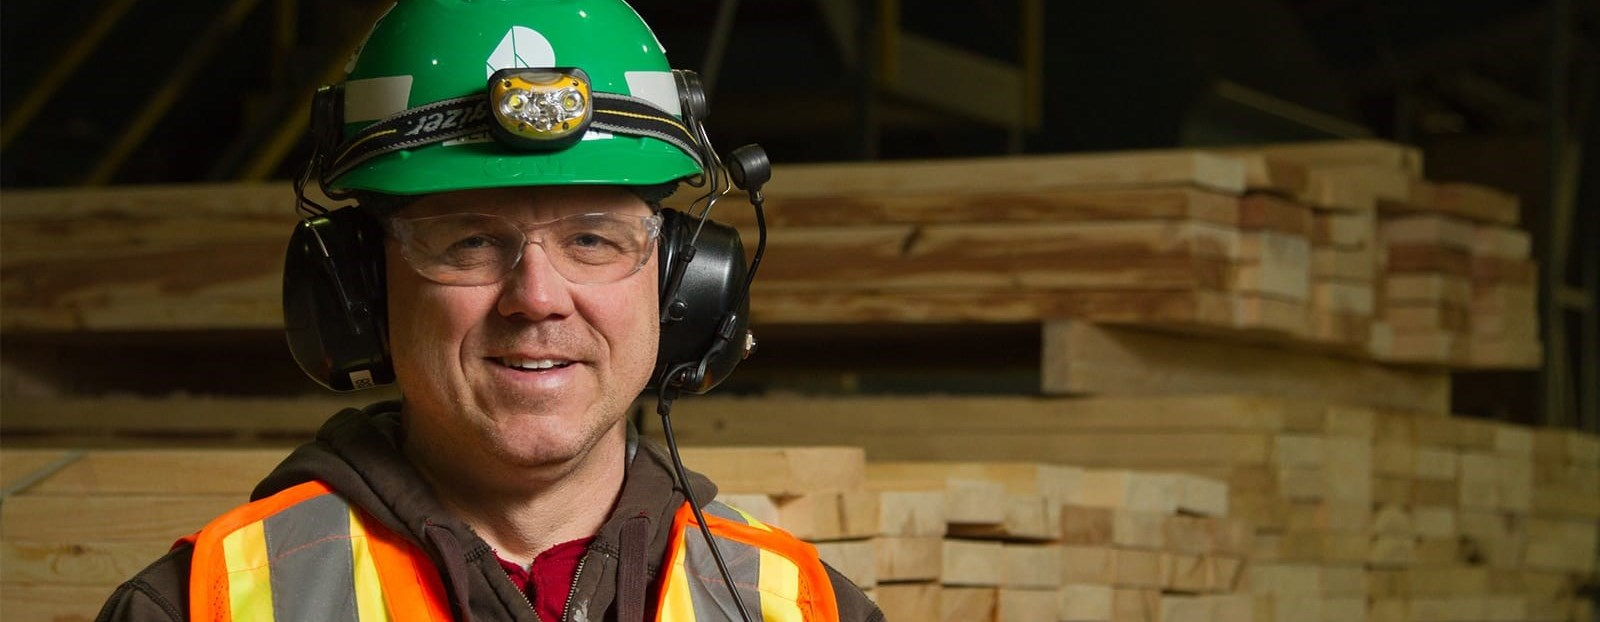 man wearing a hard hat